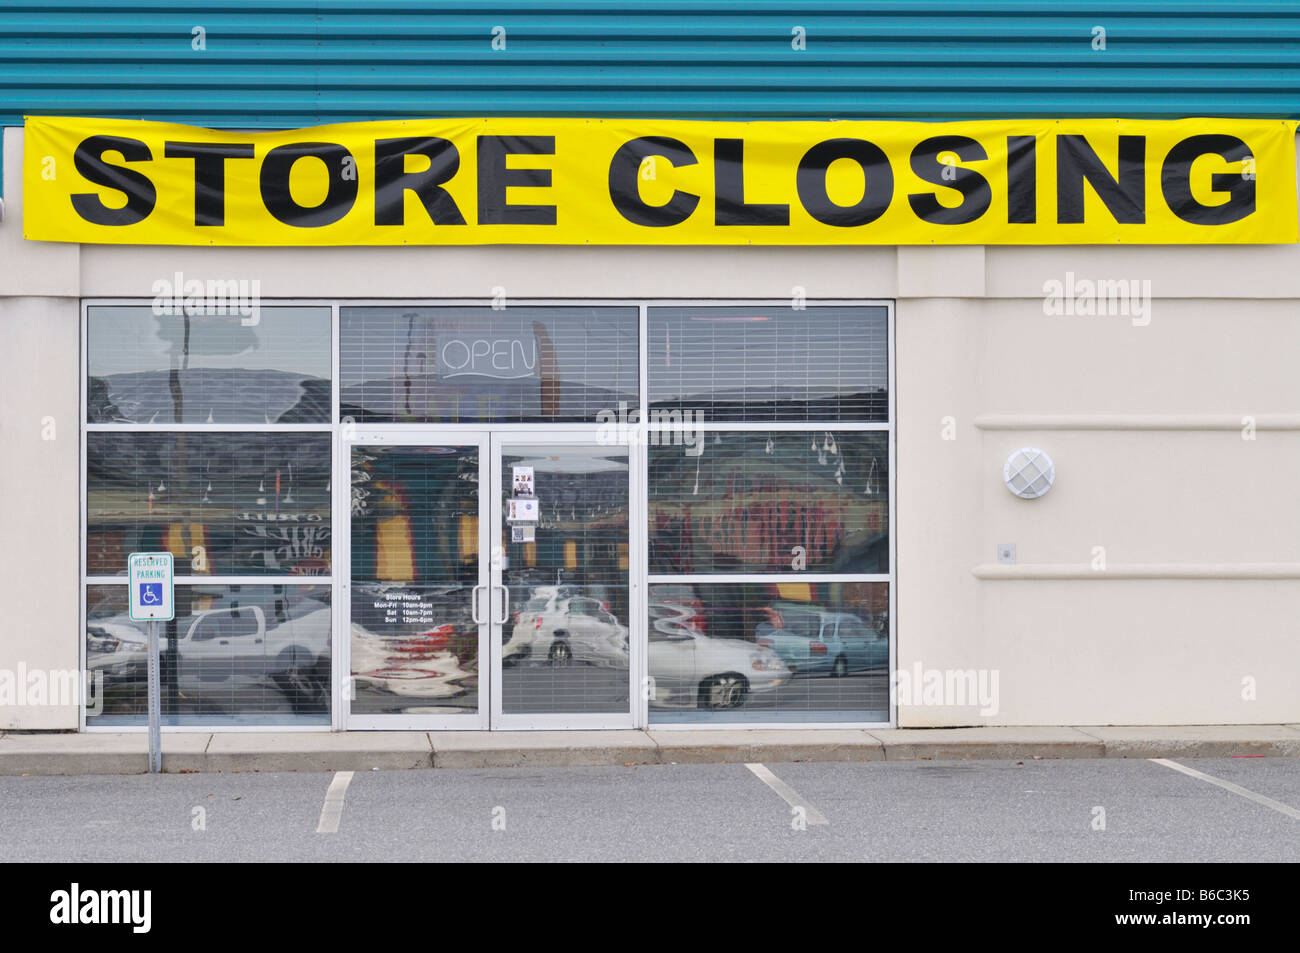 Store Closing Banner across storefront of empty retail store. USA - Stock Image